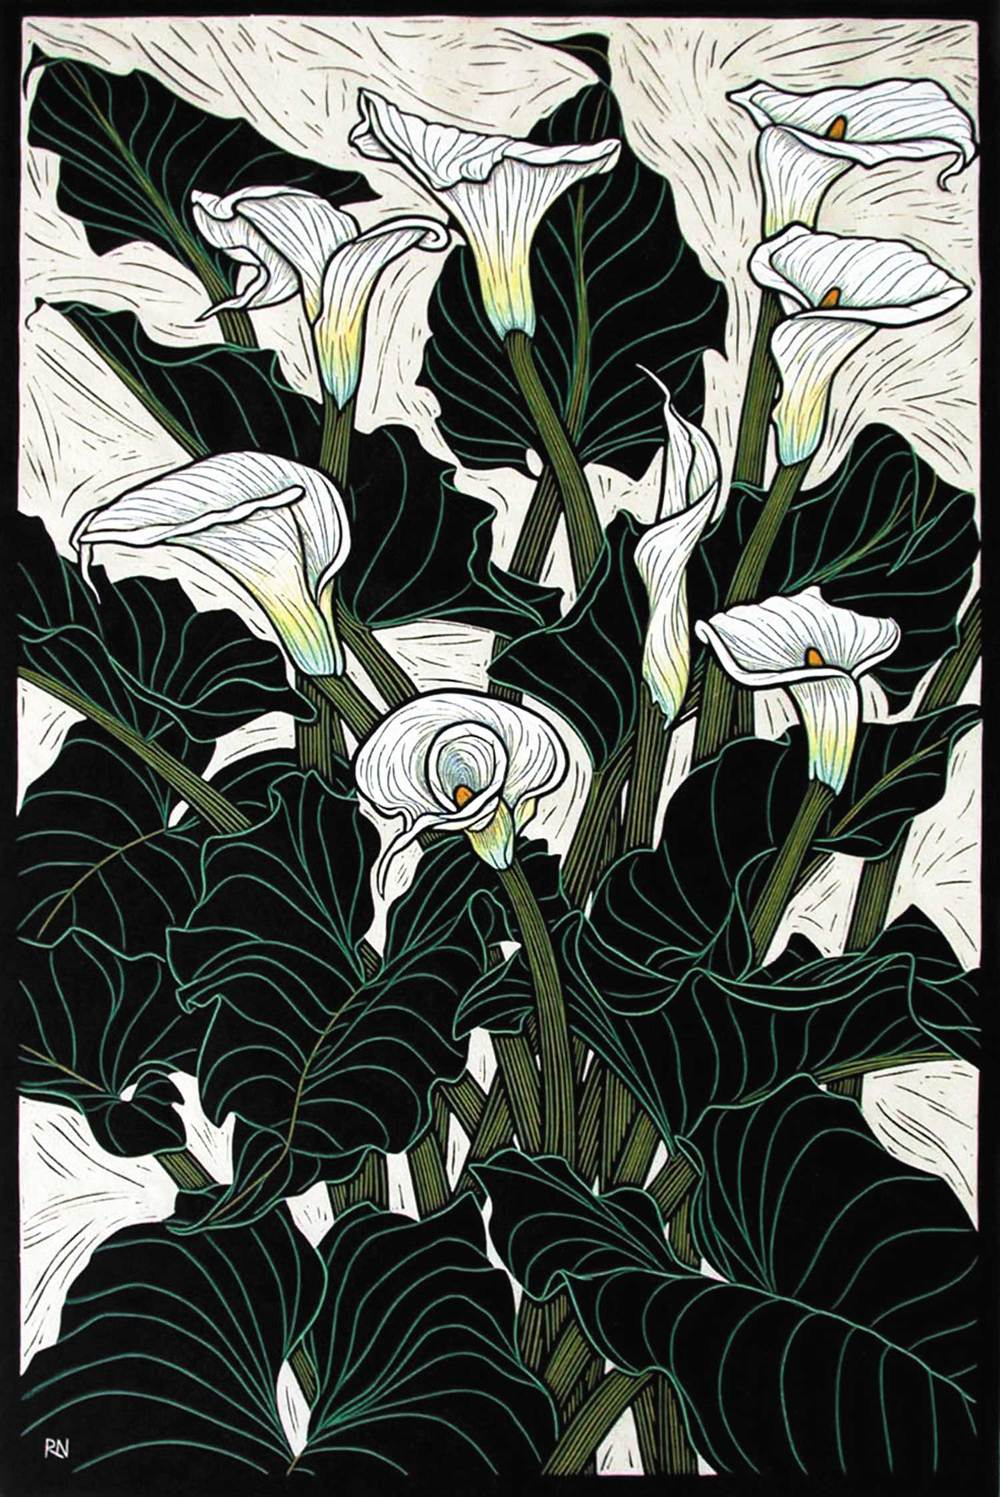 ARUM LILY  74.5 X 50 CM    EDITION OF 50  HAND COLOURED LINOCUT ON HANDMADE JAPANESE PAPER  $1,550